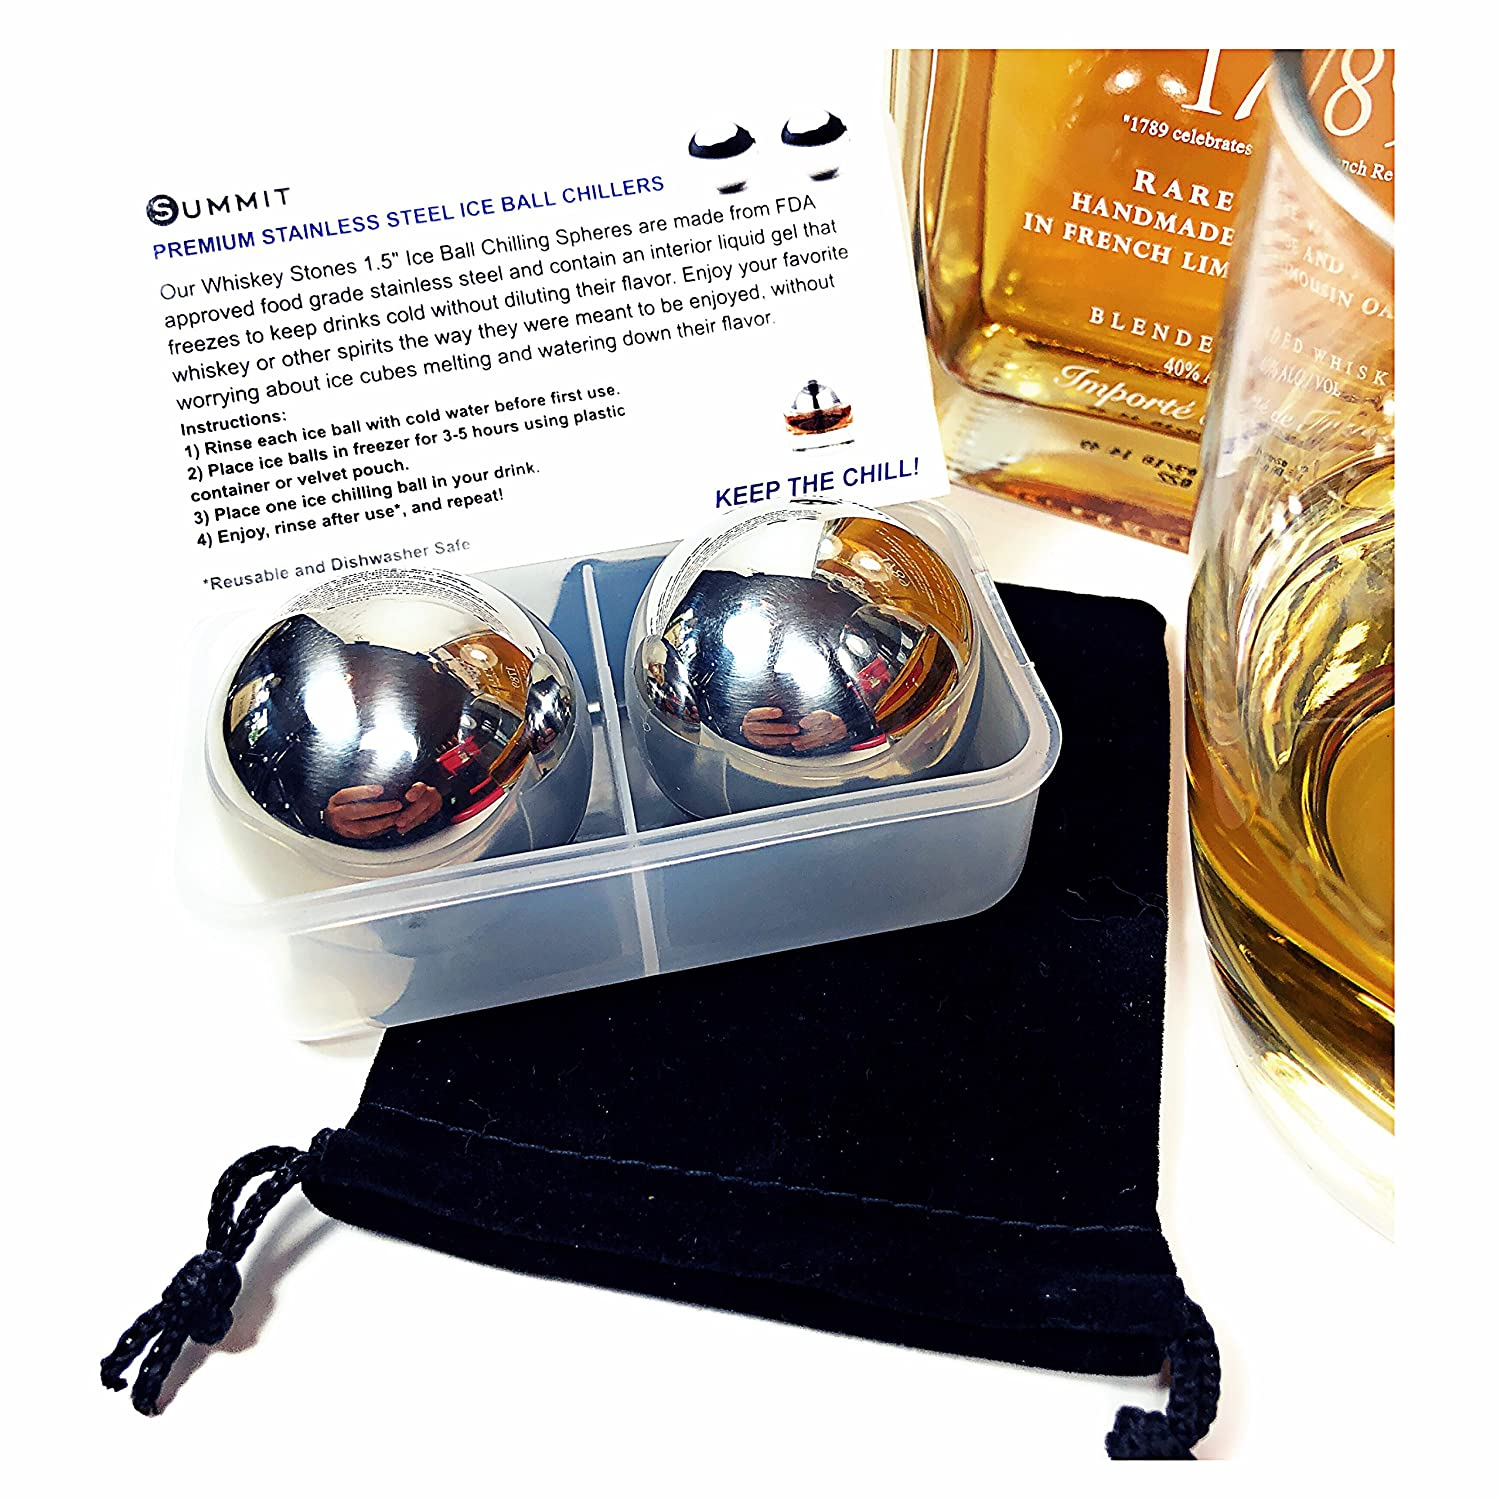 Whiskey Stainless Steel Balls Drink Chillers Gift Set of 2 Large Ice Balls, Velvet Bag, Freezer Container & Product Info Card   Retain Full Flavor & Chill   Whiskey Wine Vodka Spirits Coolers SUMMIT